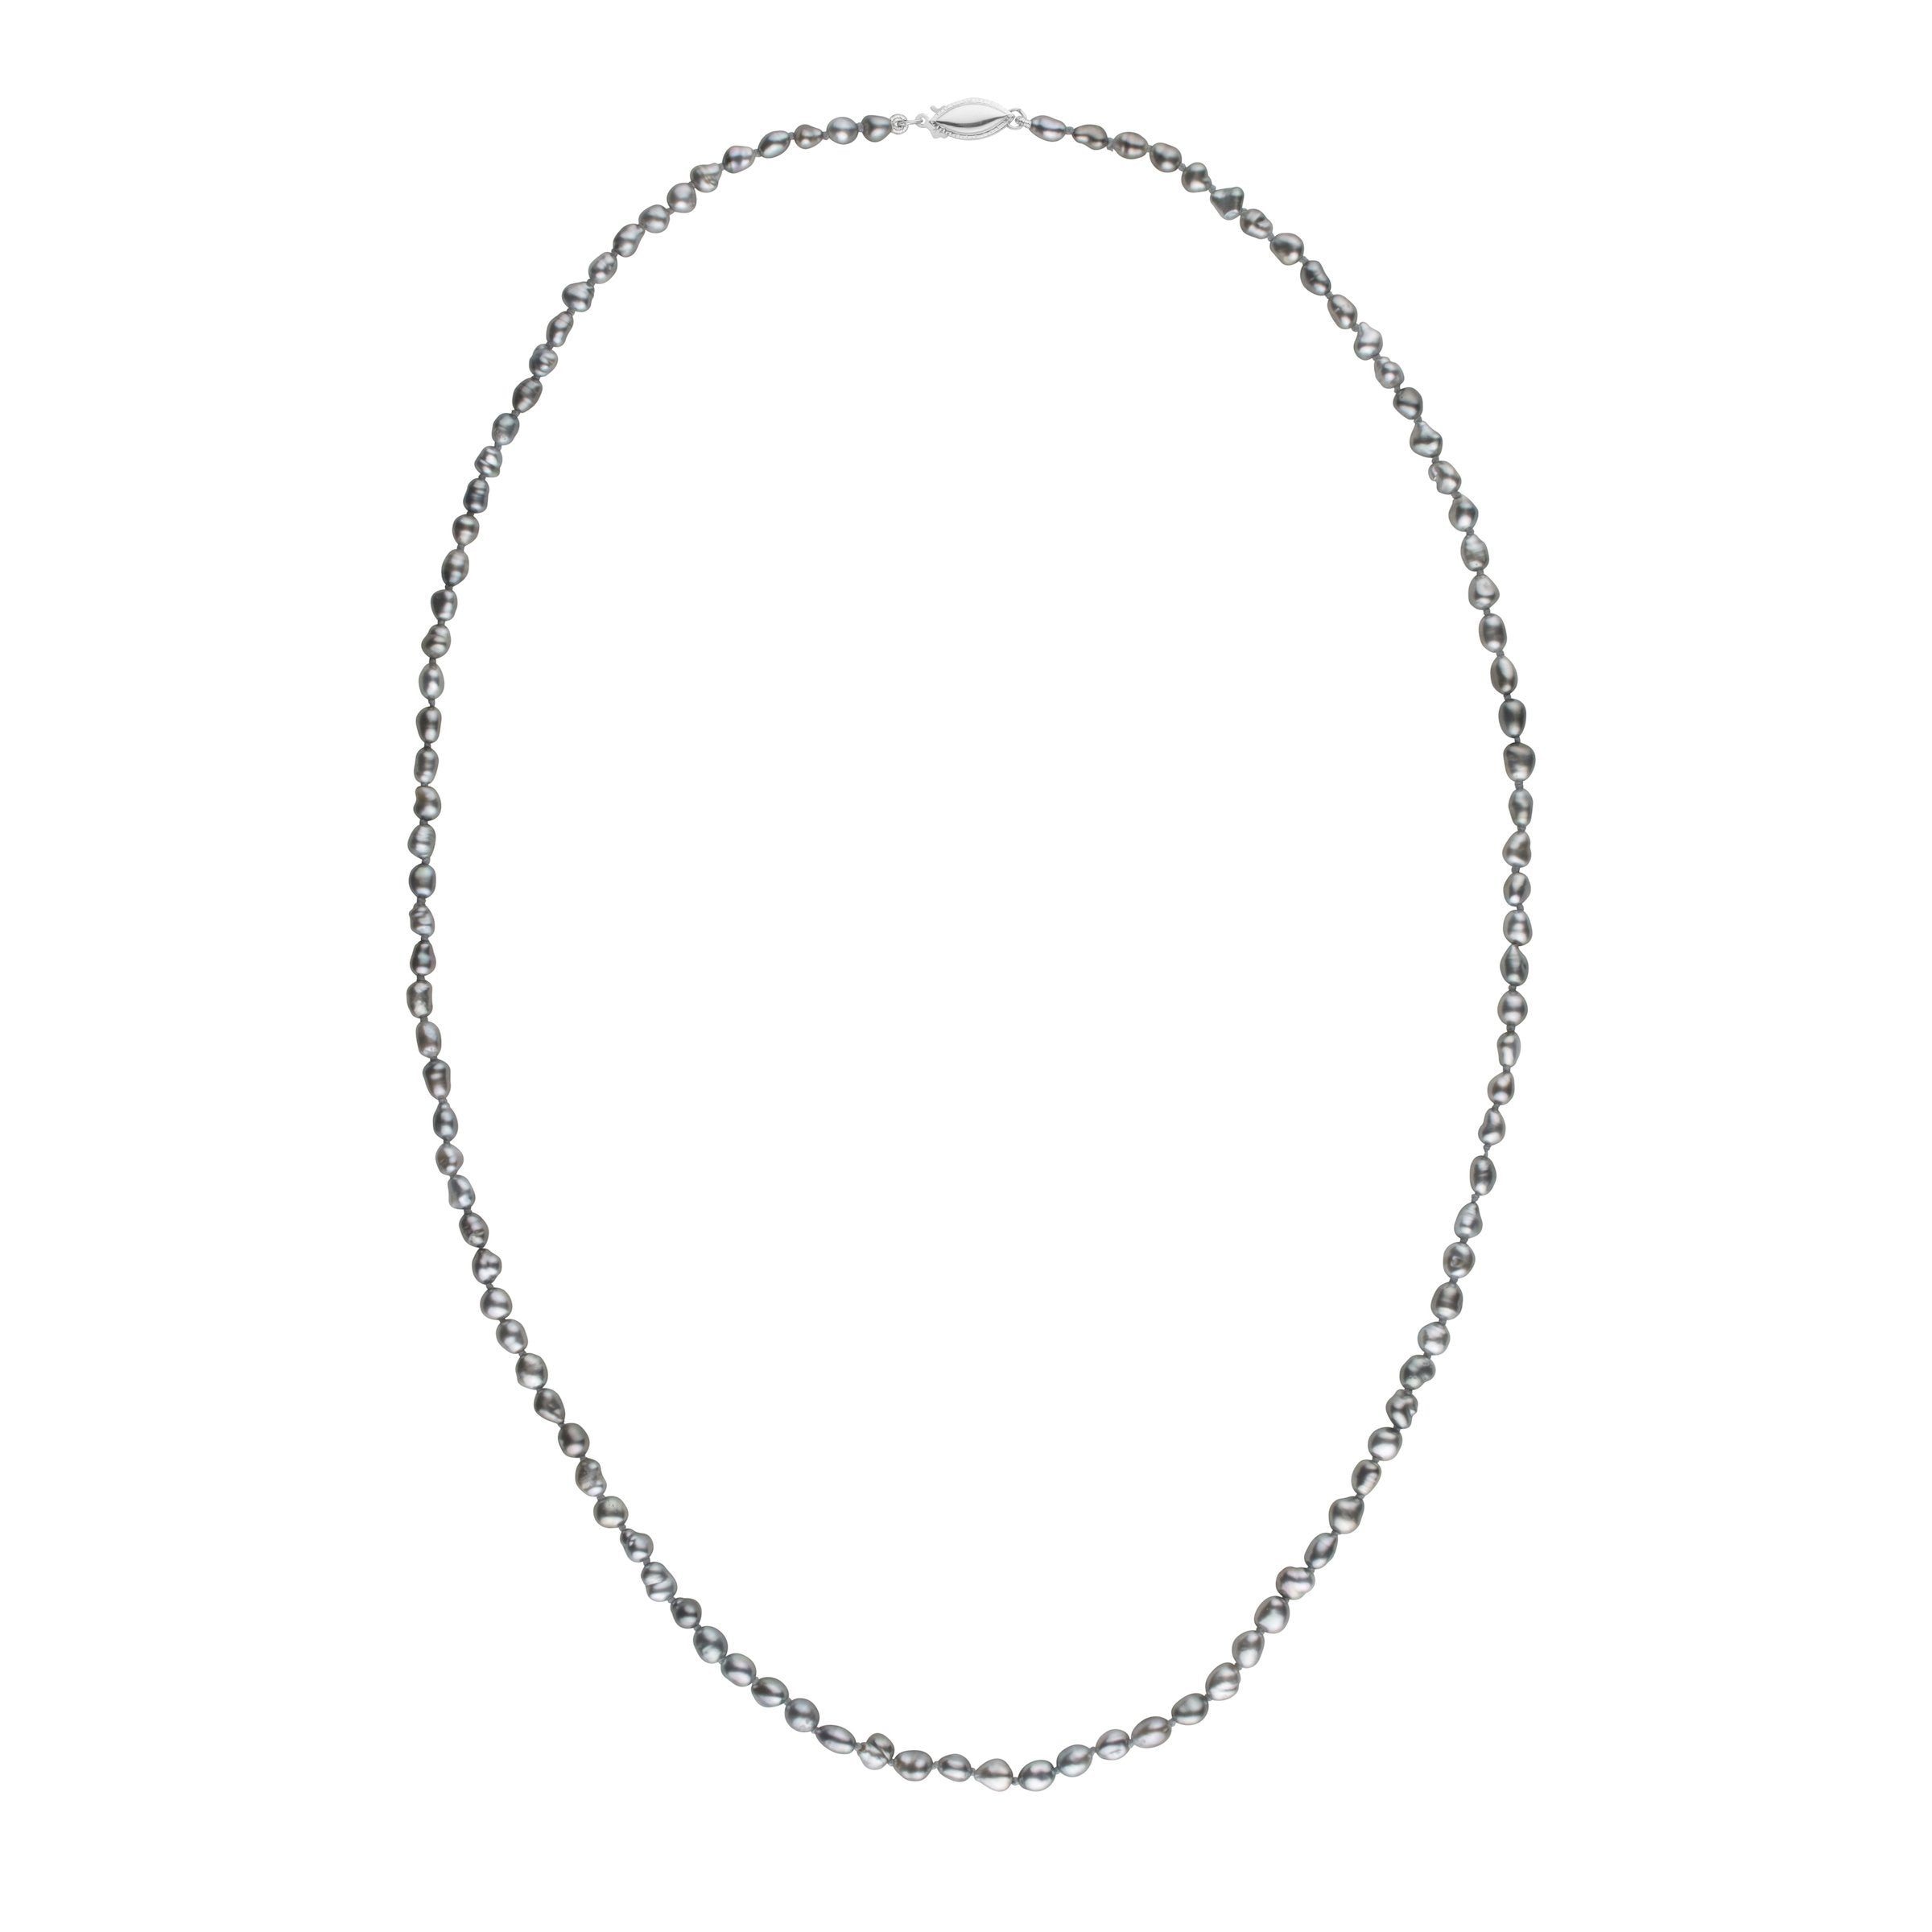 3.0-4.5 mm 24 Inch Keshi Tahitian Pearl Necklace